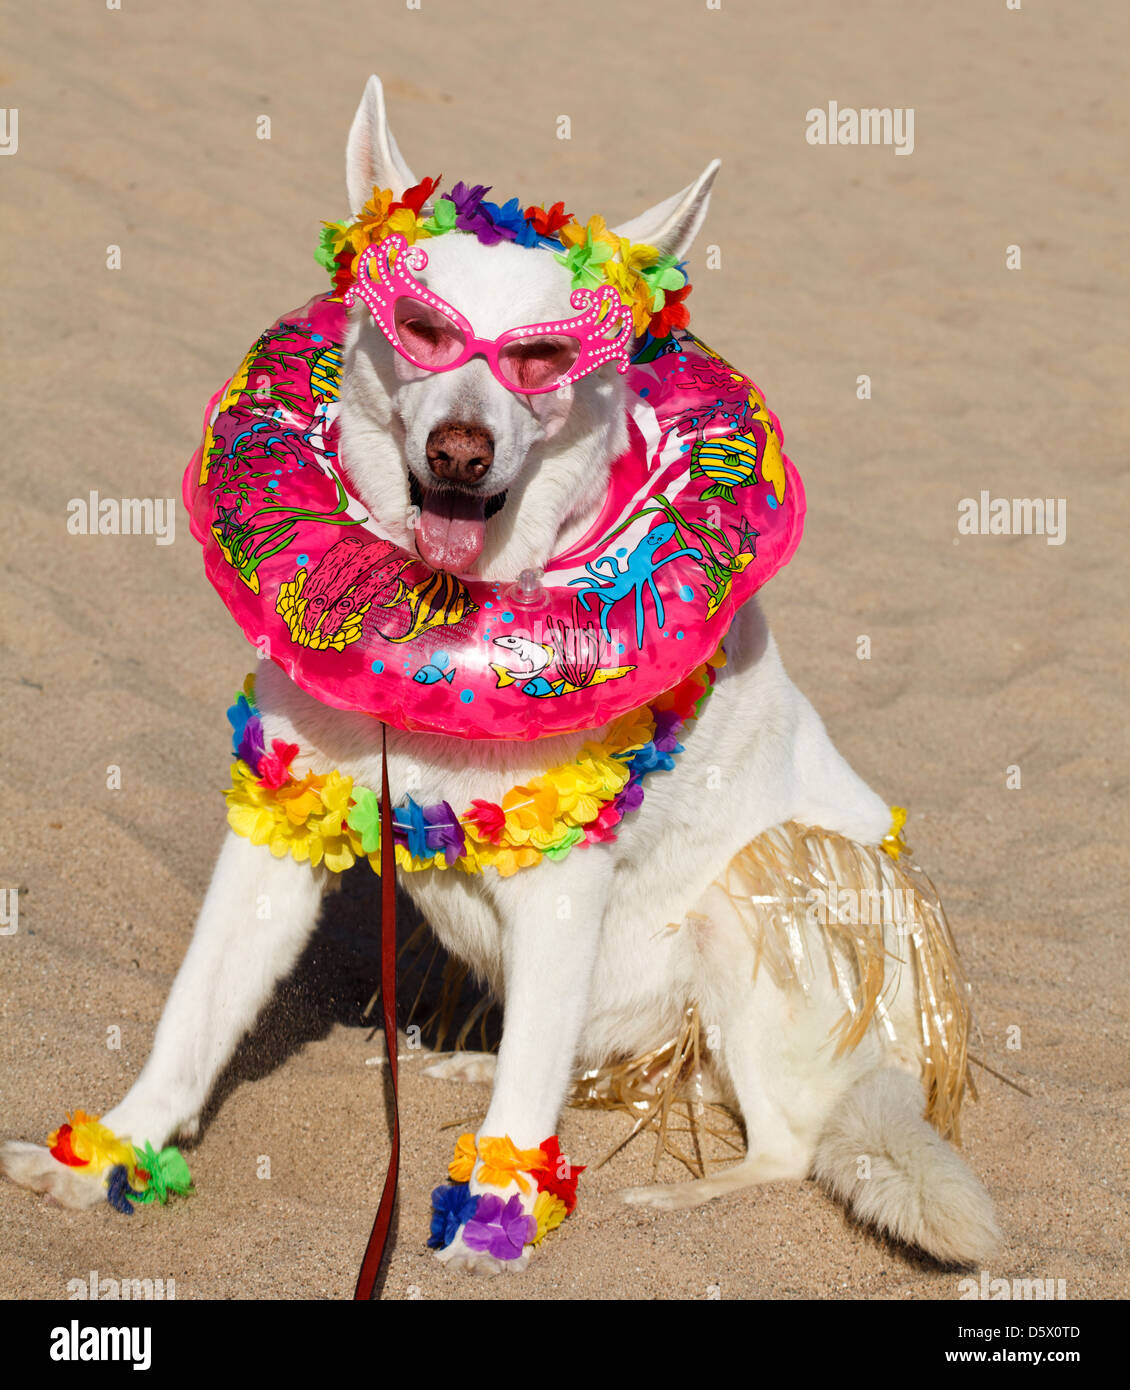 White German Shepherd in Hawaii-theme costume with leis, a swim ring, hula skirt and sunglasses Stock Photo